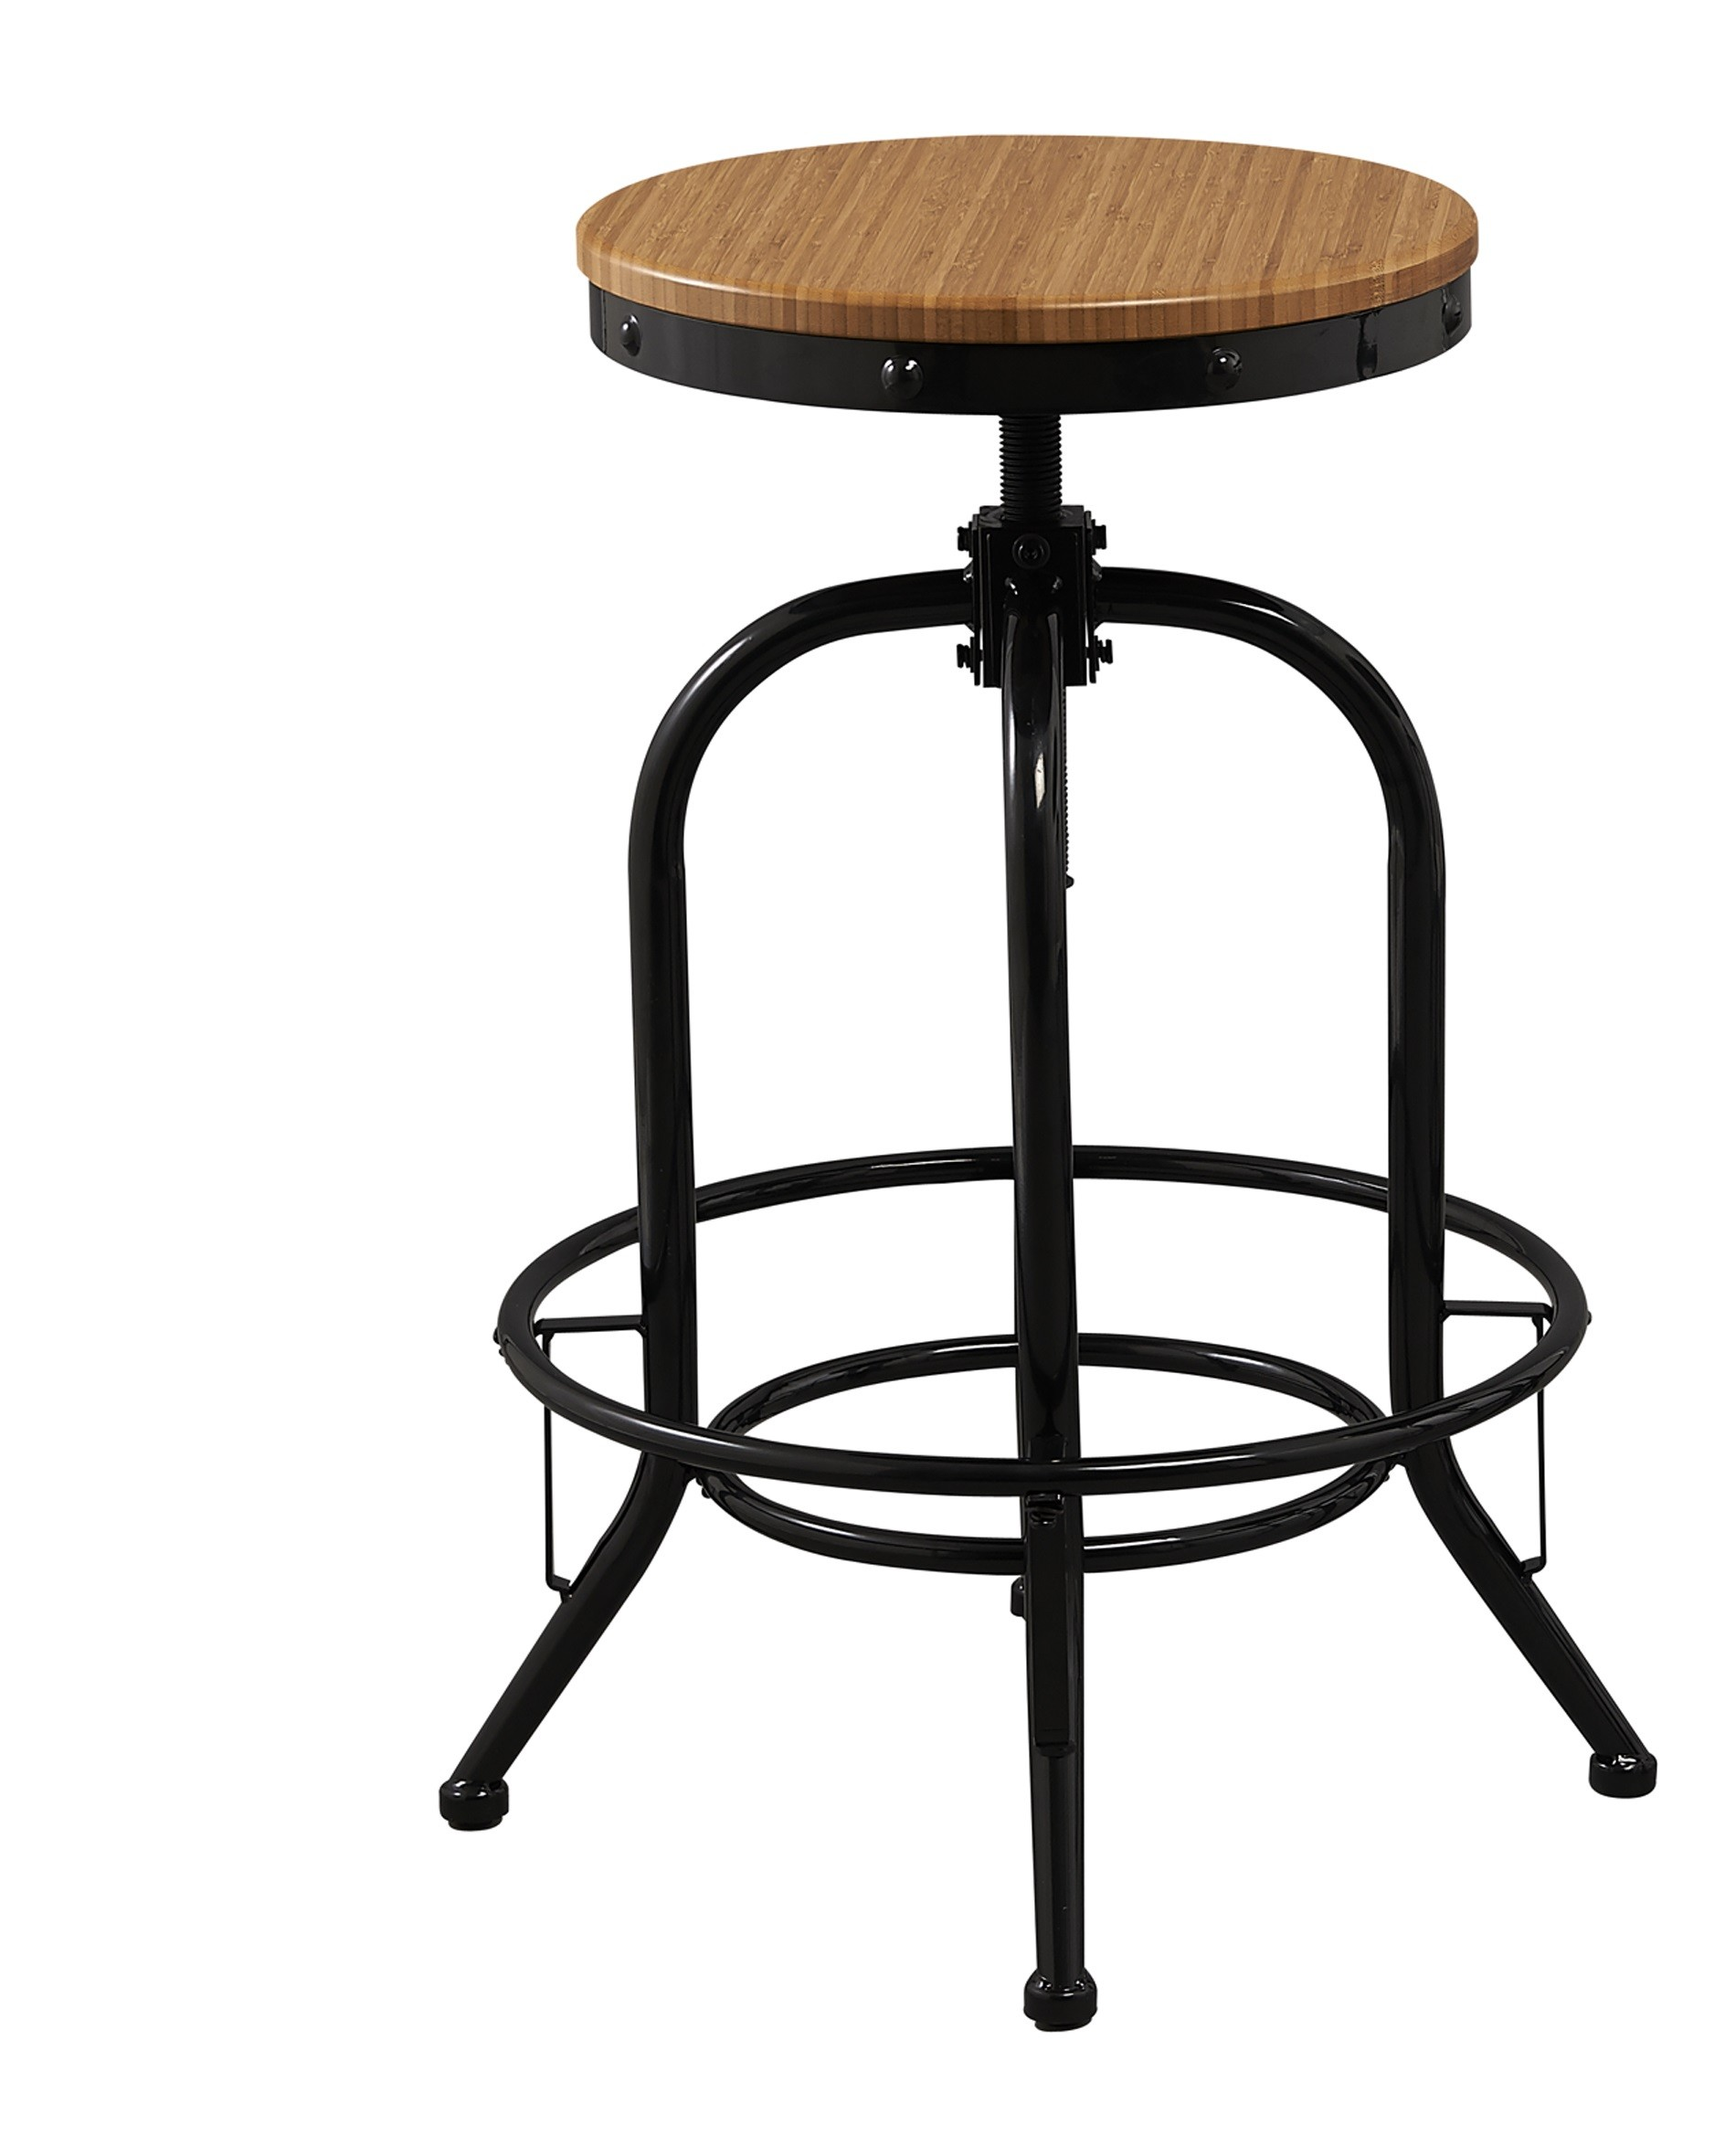 Solid Industrial 24quot 26quot 30quot or 32quot Bar Stool Counter  : AM5012 from www.richbattery.com size 1888 x 2360 jpeg 253kB